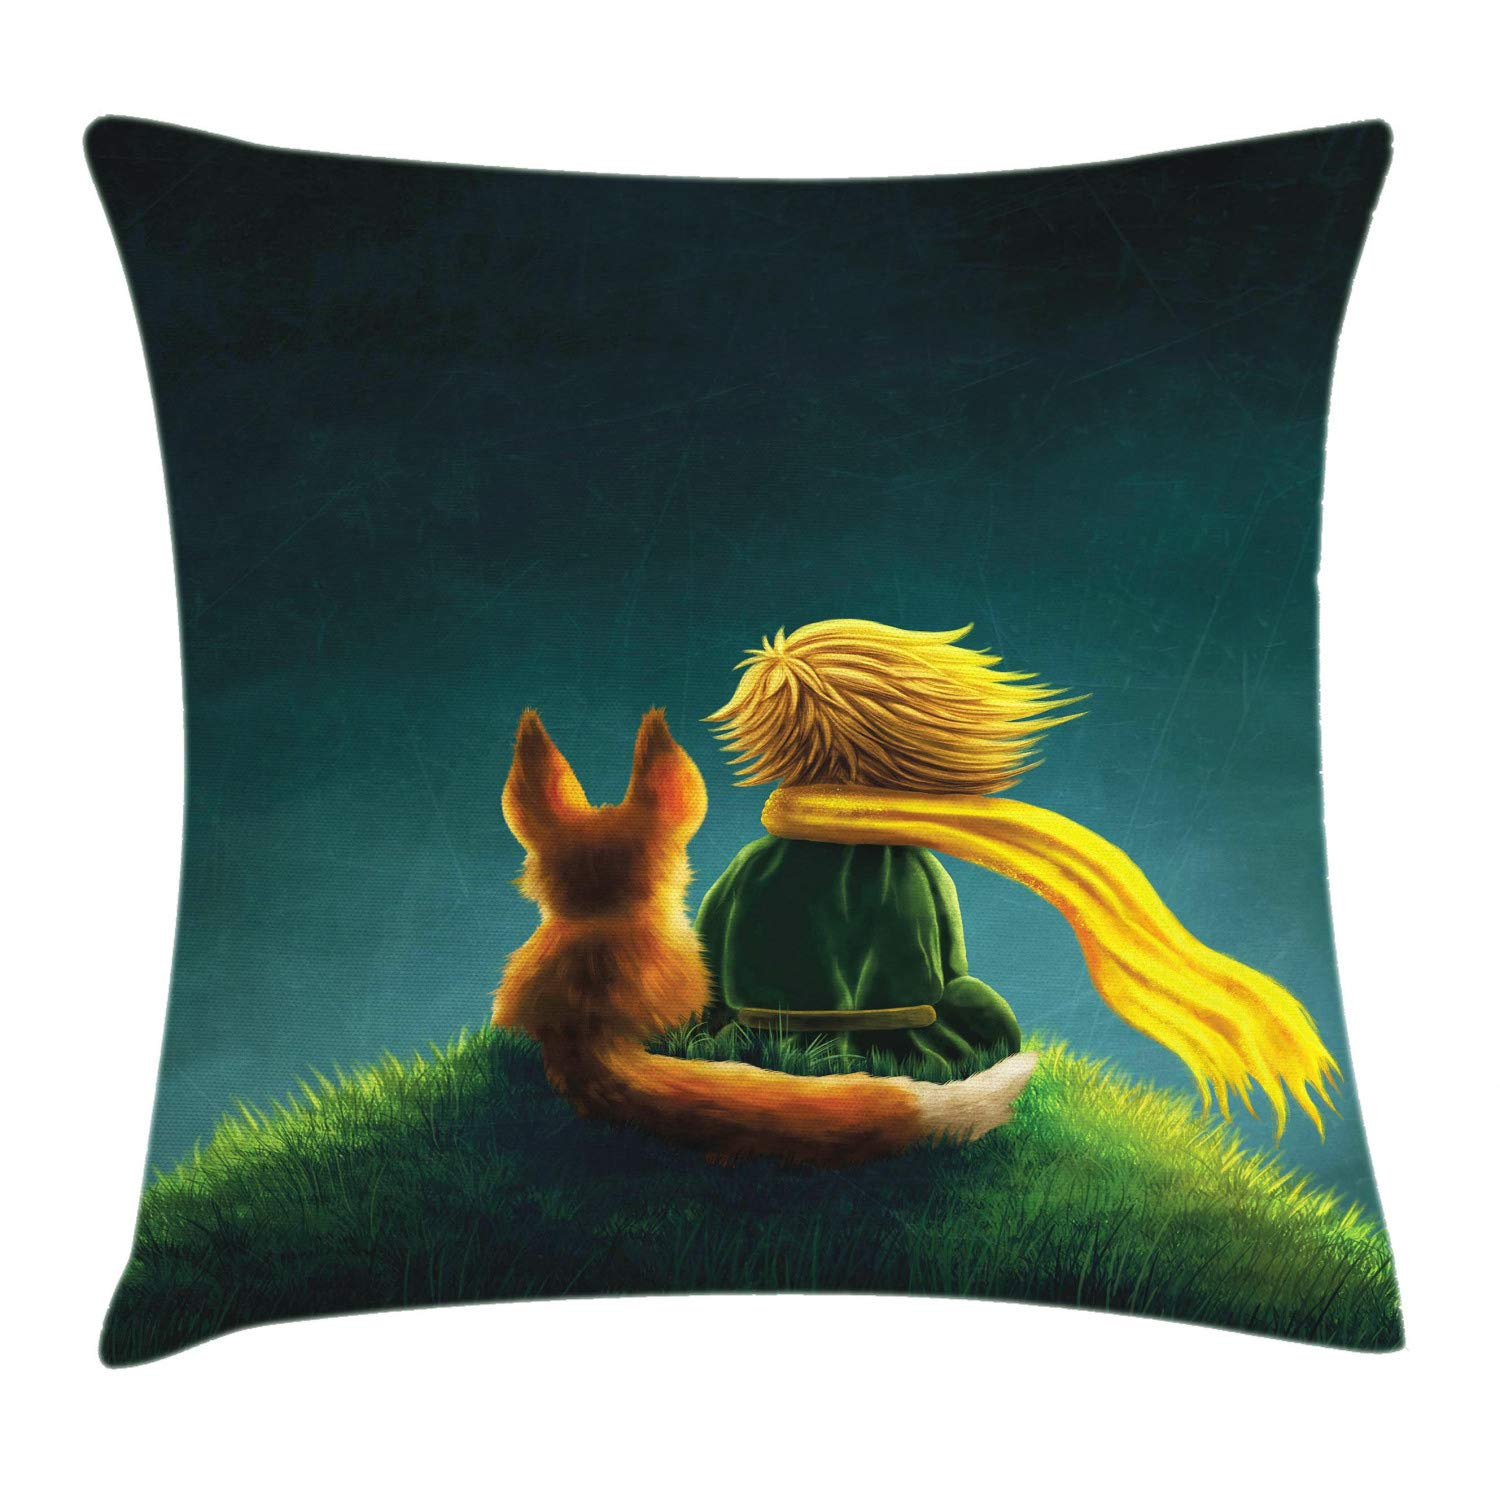 Ambesonne Kids Decor Throw Pillow Cushion Cover by, Childrens Decor Little Prince and the Fox Looking at the Sky Pattern, Decorative Square Accent Pillow Case, 16 X 16 Inches, Dark Blue Fern Green by Ambesonne